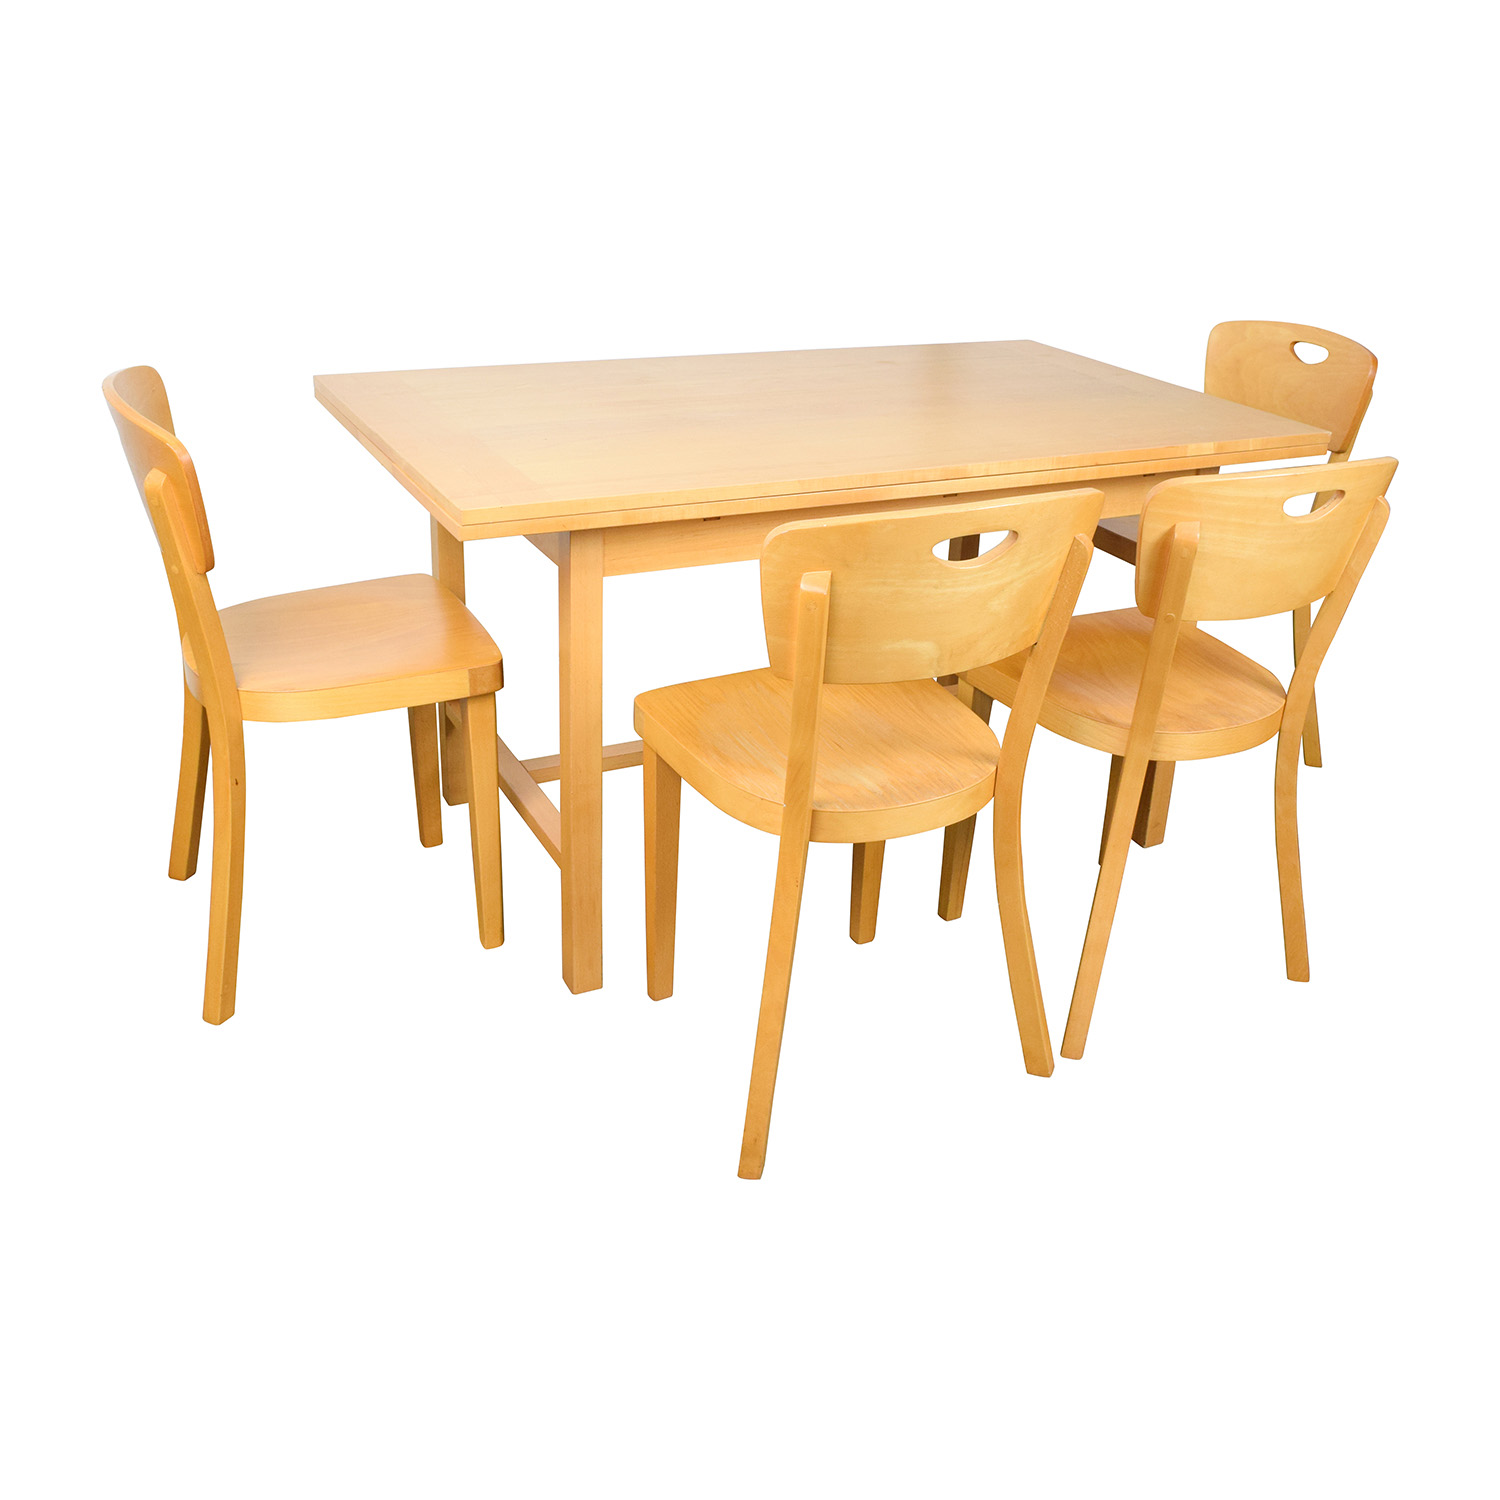 46% OFF - Macy\'s Macy\'s Wood Expandable Dining Table with Chairs ...